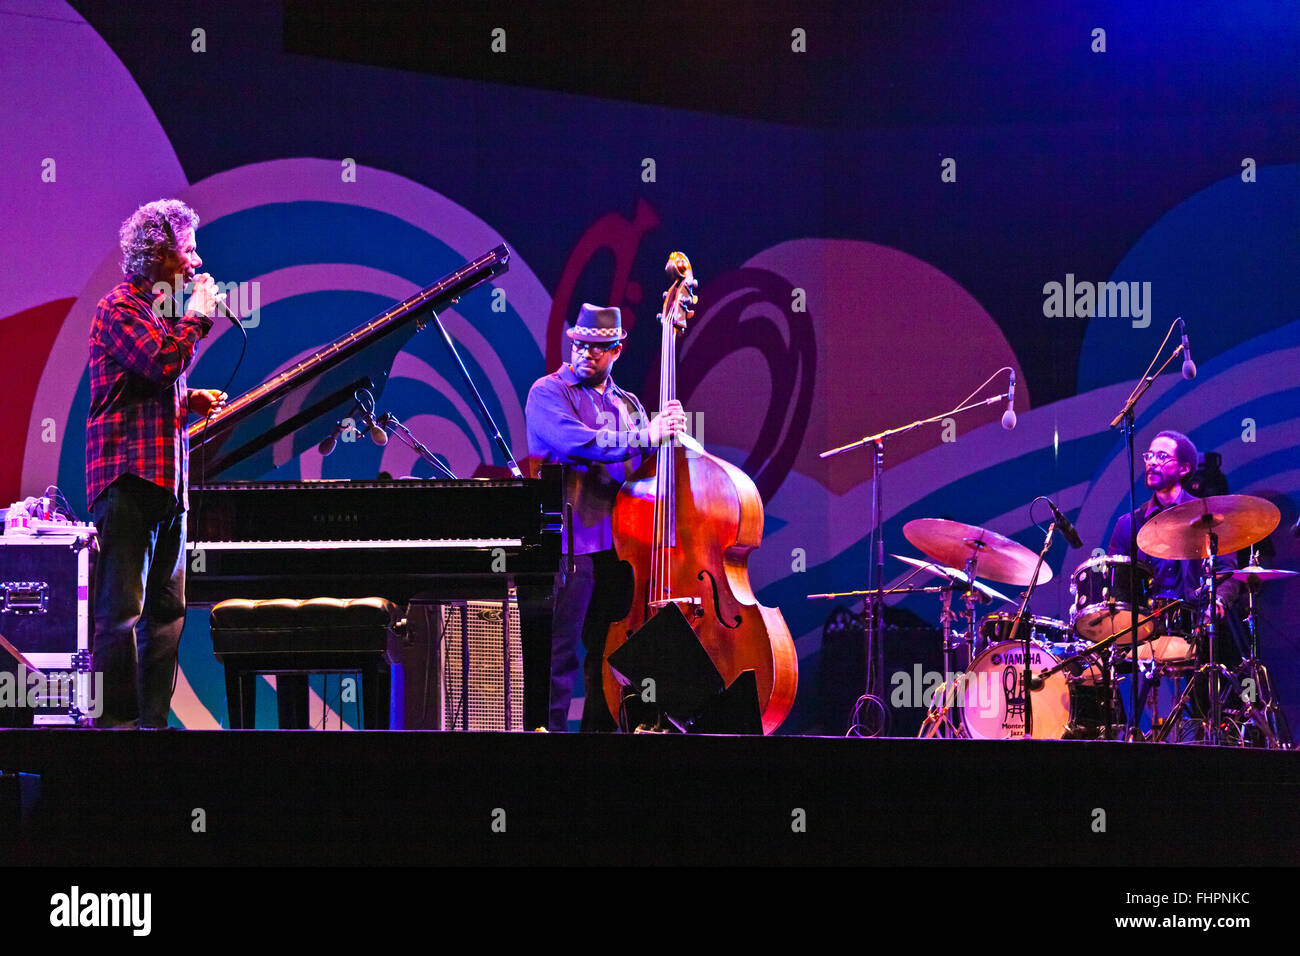 BRIAN BLADE on drums and CHRISTIAN MCBRIDE with Chic Corea performing at the 58th Monterey Jazz Festival - California - Stock Image